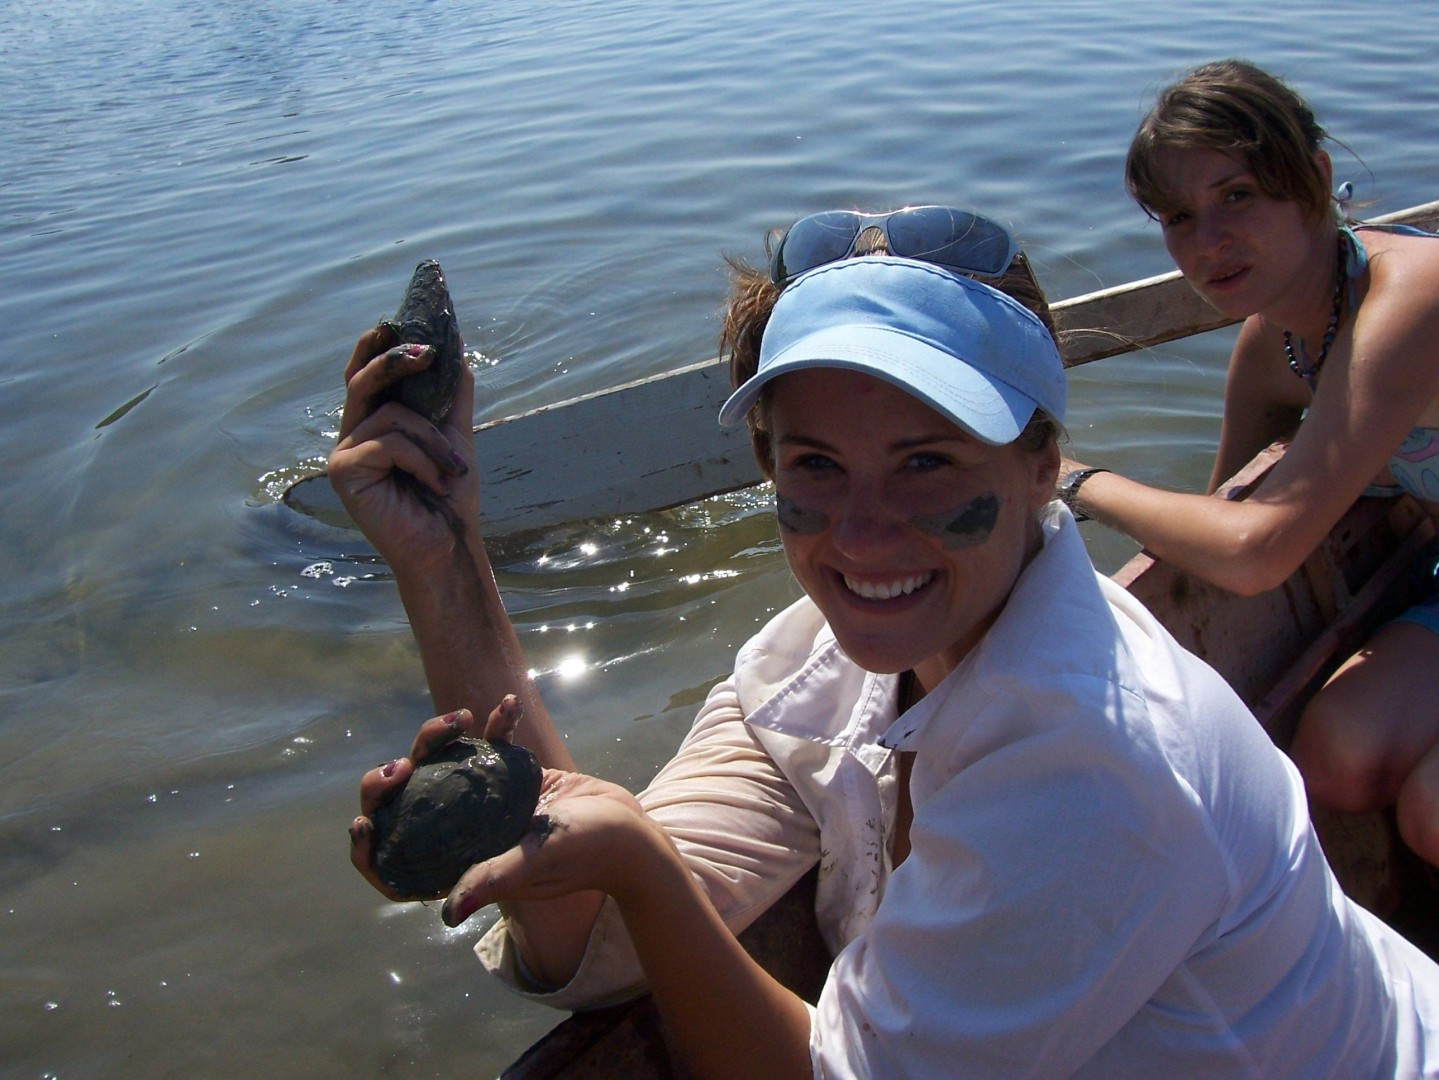 Practicing environmental sampling of freshwater mussels in the Danube River in the Iron Gates region on the Romanian-Serbian border in 2008